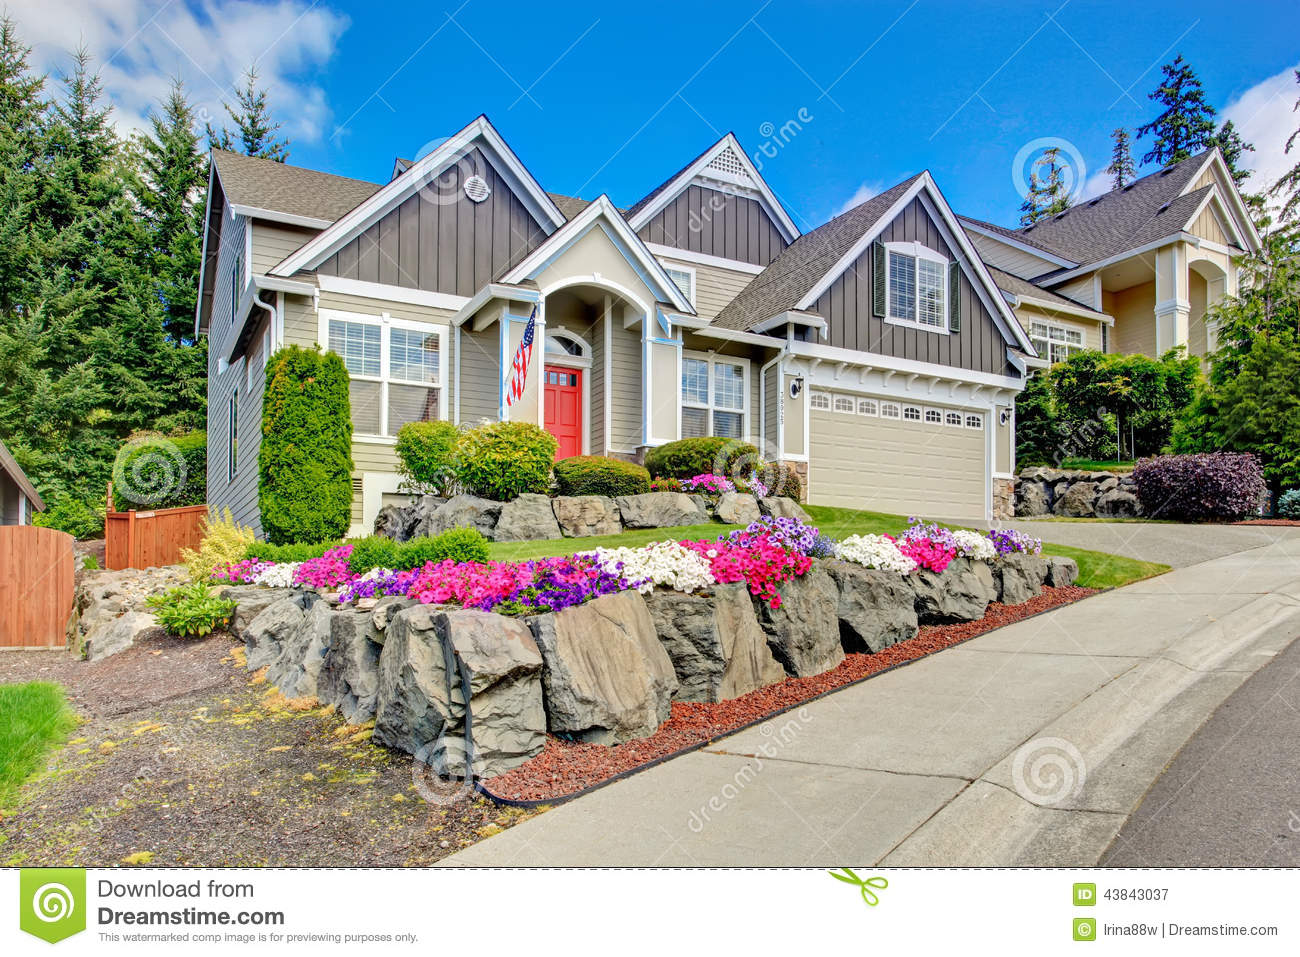 American House With Beautiful Landscape And Vivid Flowers Stock Photo Image 43843037